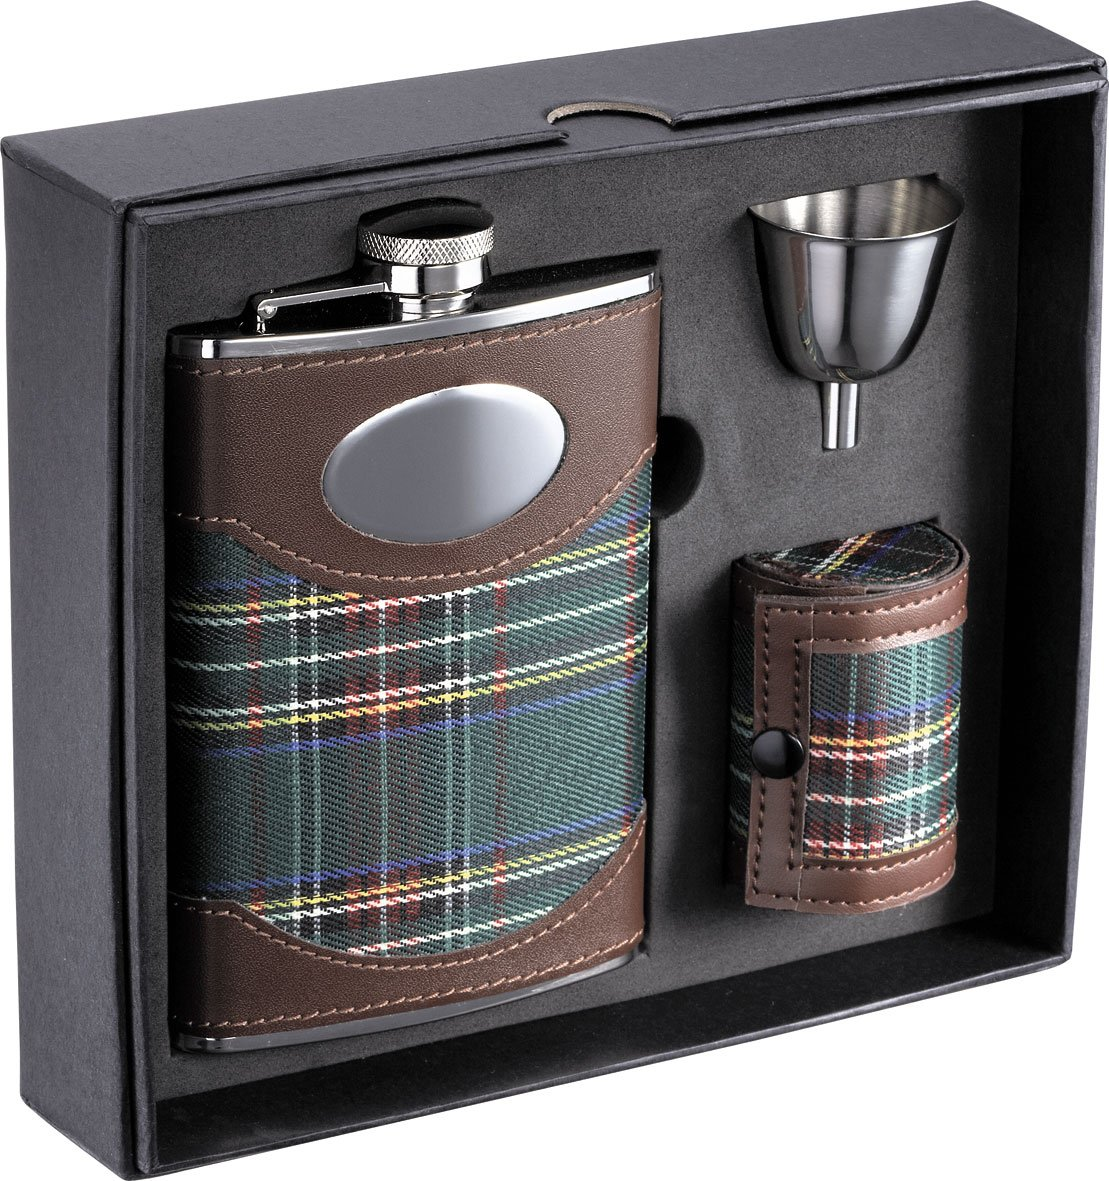 Visol''Edinburgh'' Plaid Cloth Stainless Steel Deluxe Flask Gift Set, 8-Ounce